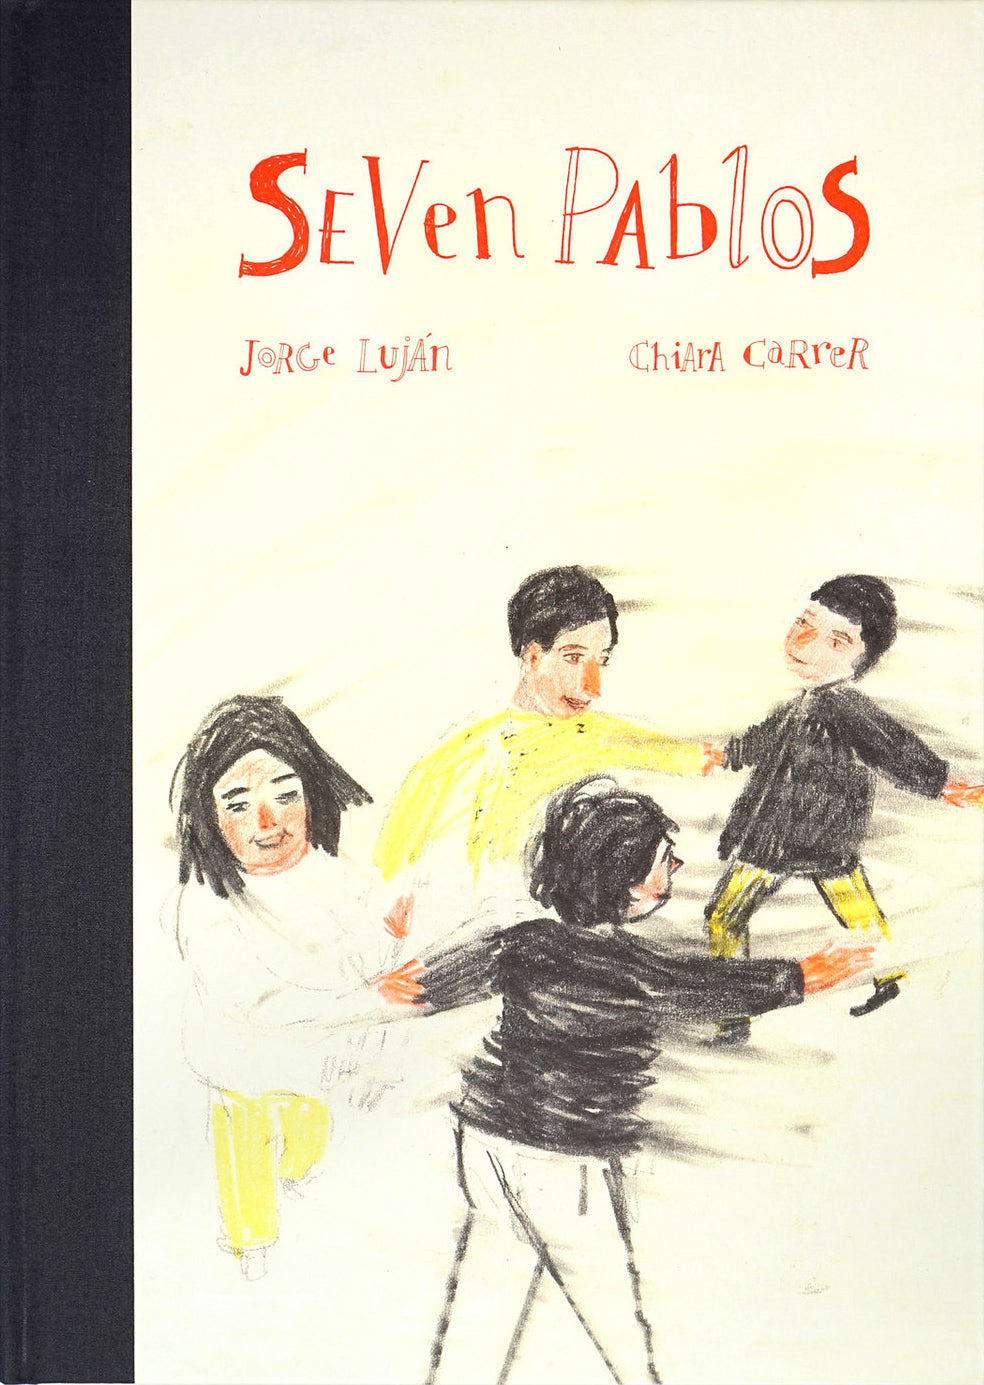 Seven Pablos by Jorge Luján and Chiara Carrer